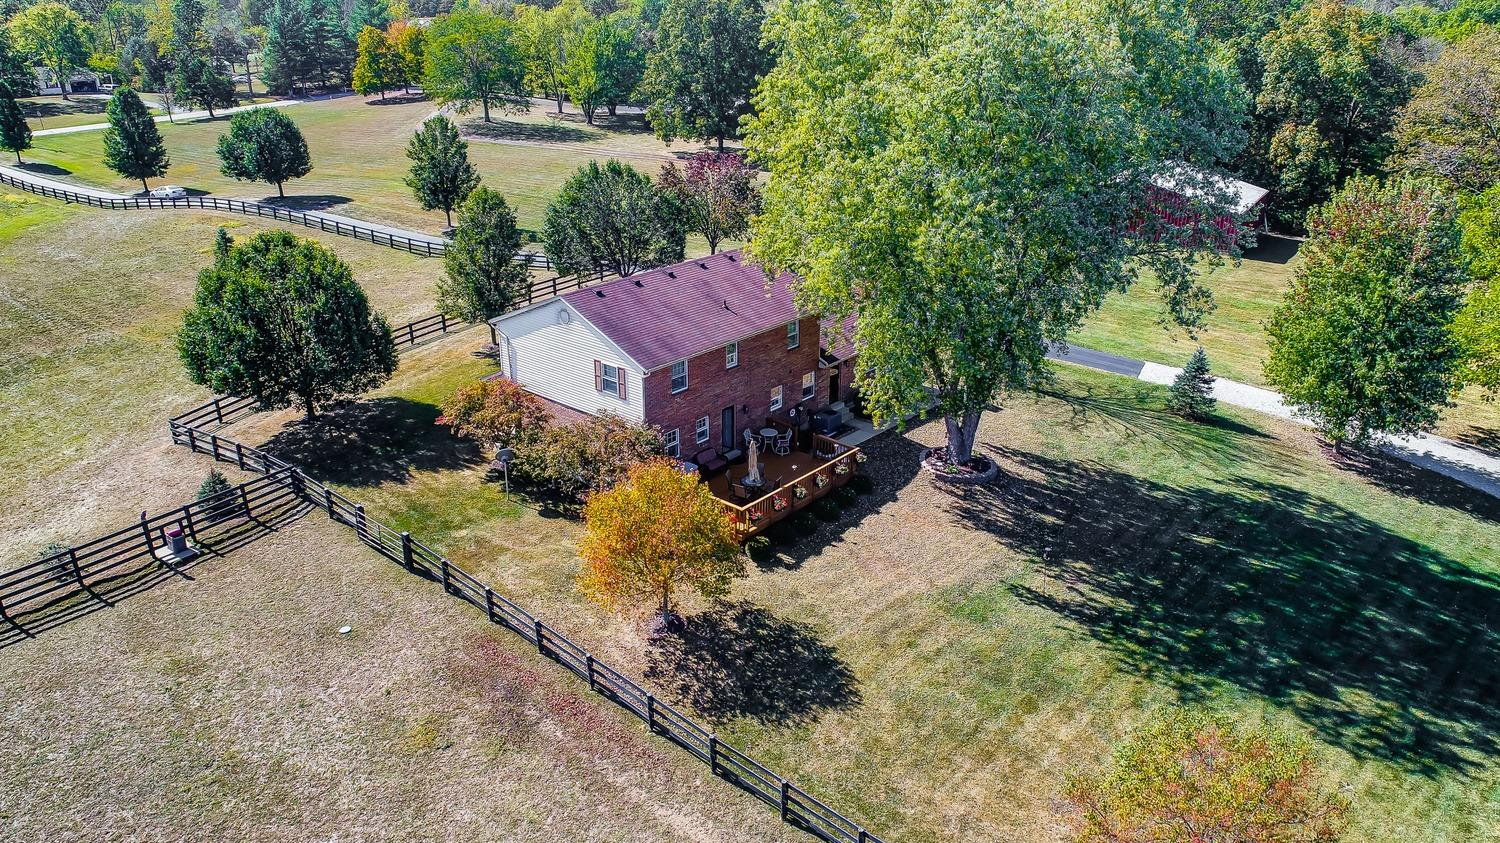 Photo 3 for 6766 Kalbfleisch St Madison Twp., OH 45042